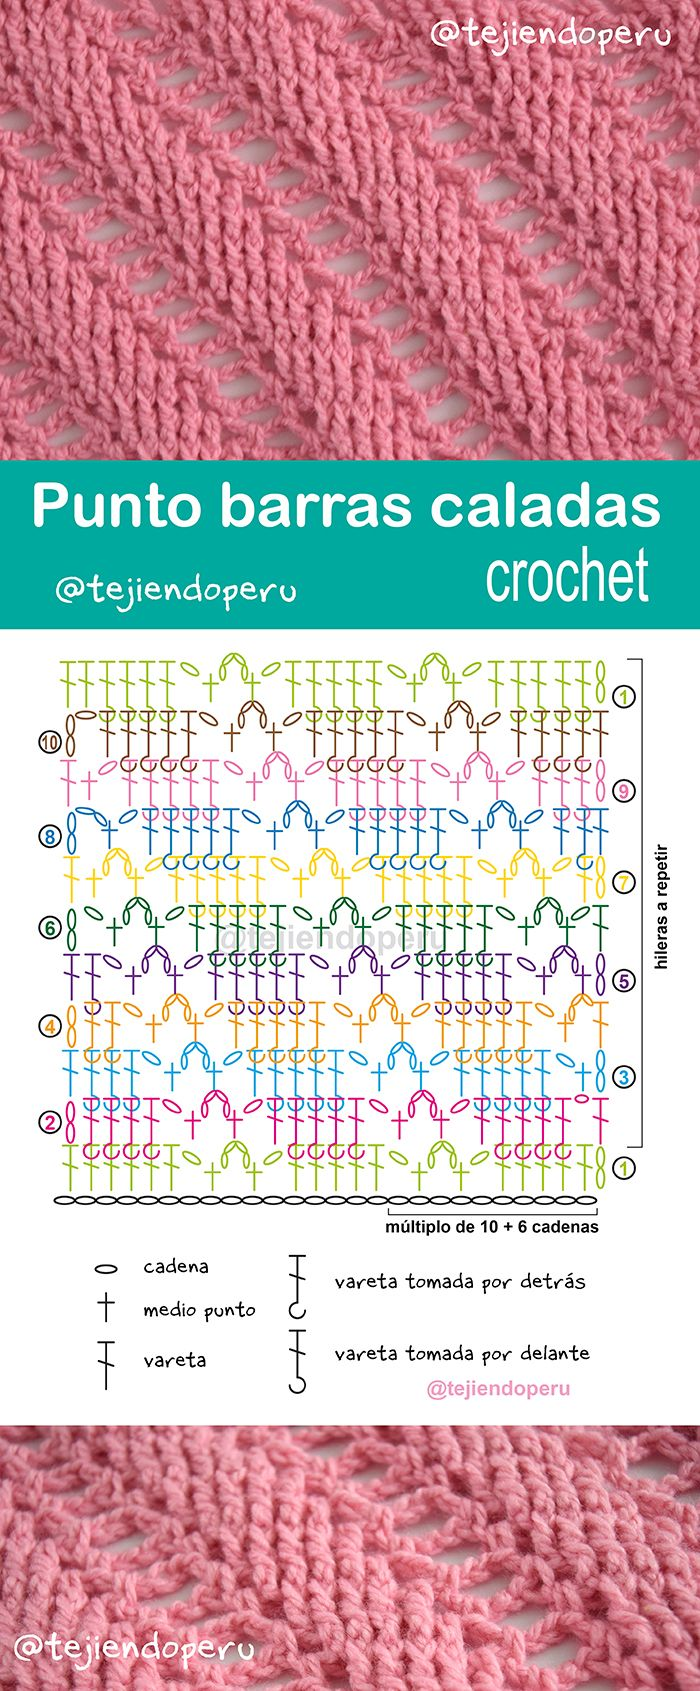 Punto barras caladas diagonales tejido a crochet.... paso a paso con video tutorial :)